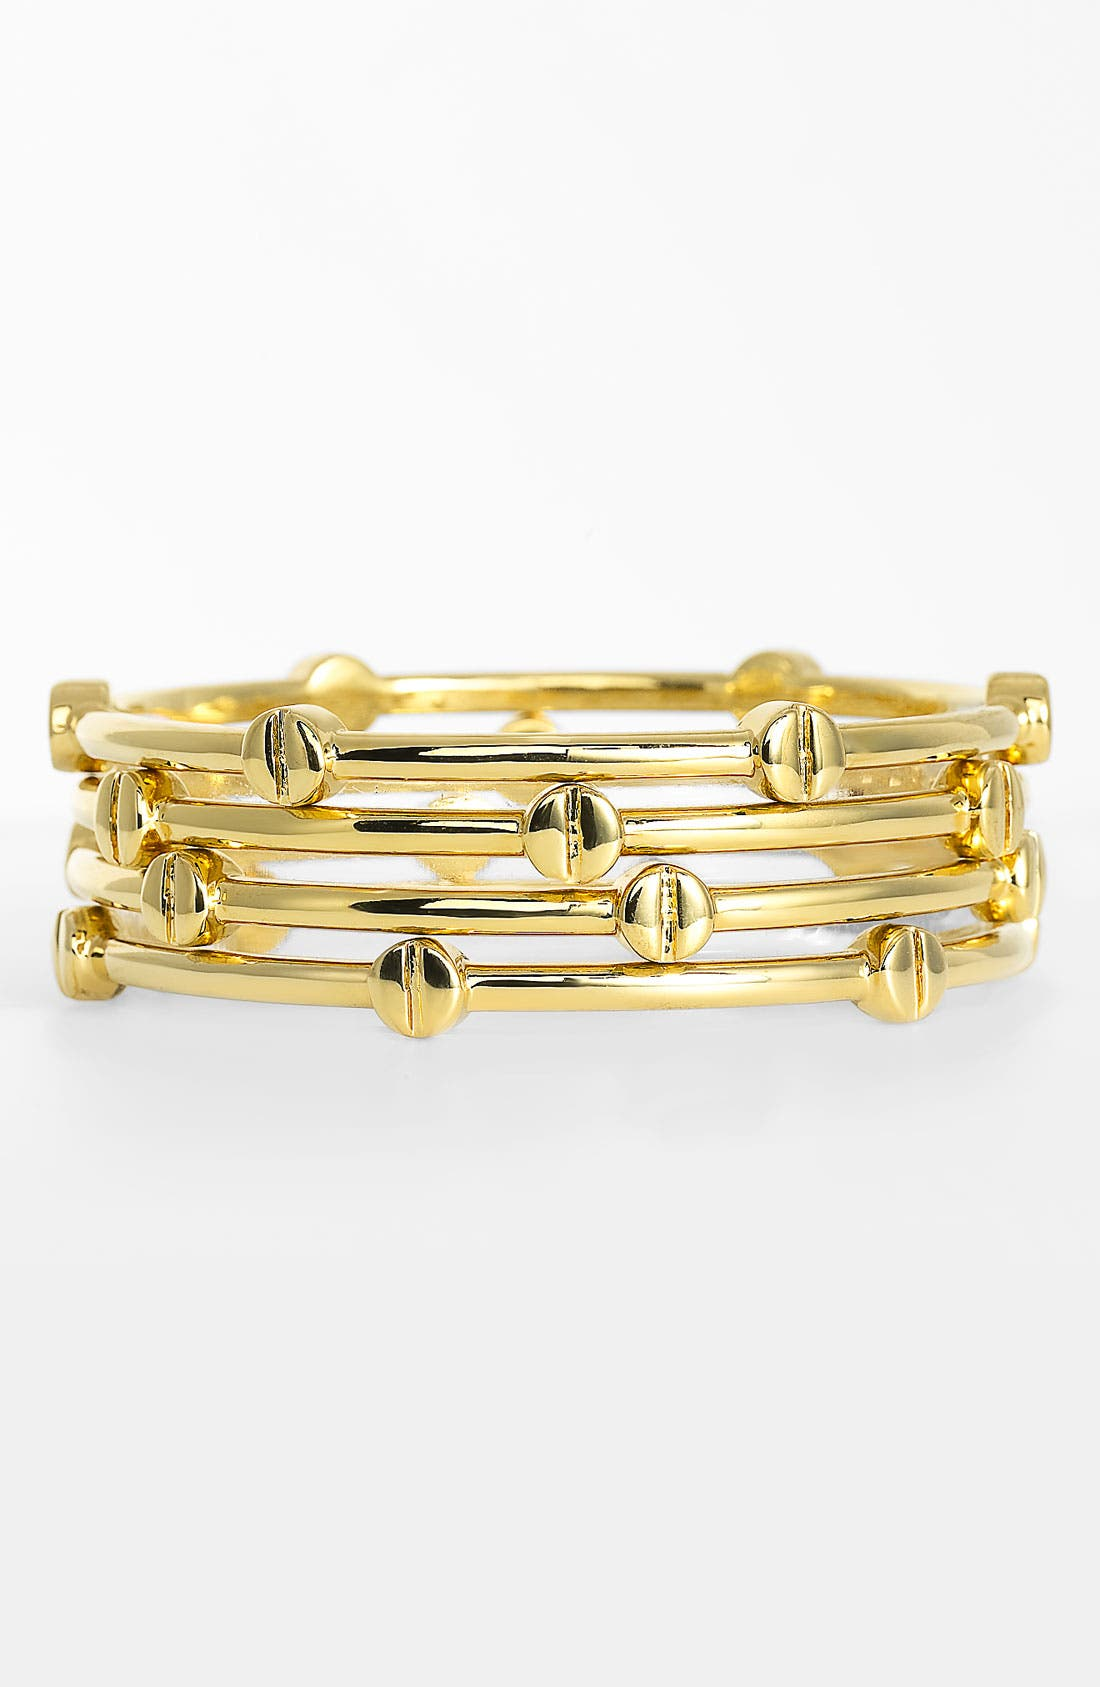 Alternate Image 1 Selected - Vince Camuto 'Basics' Bangles (Set of 4)